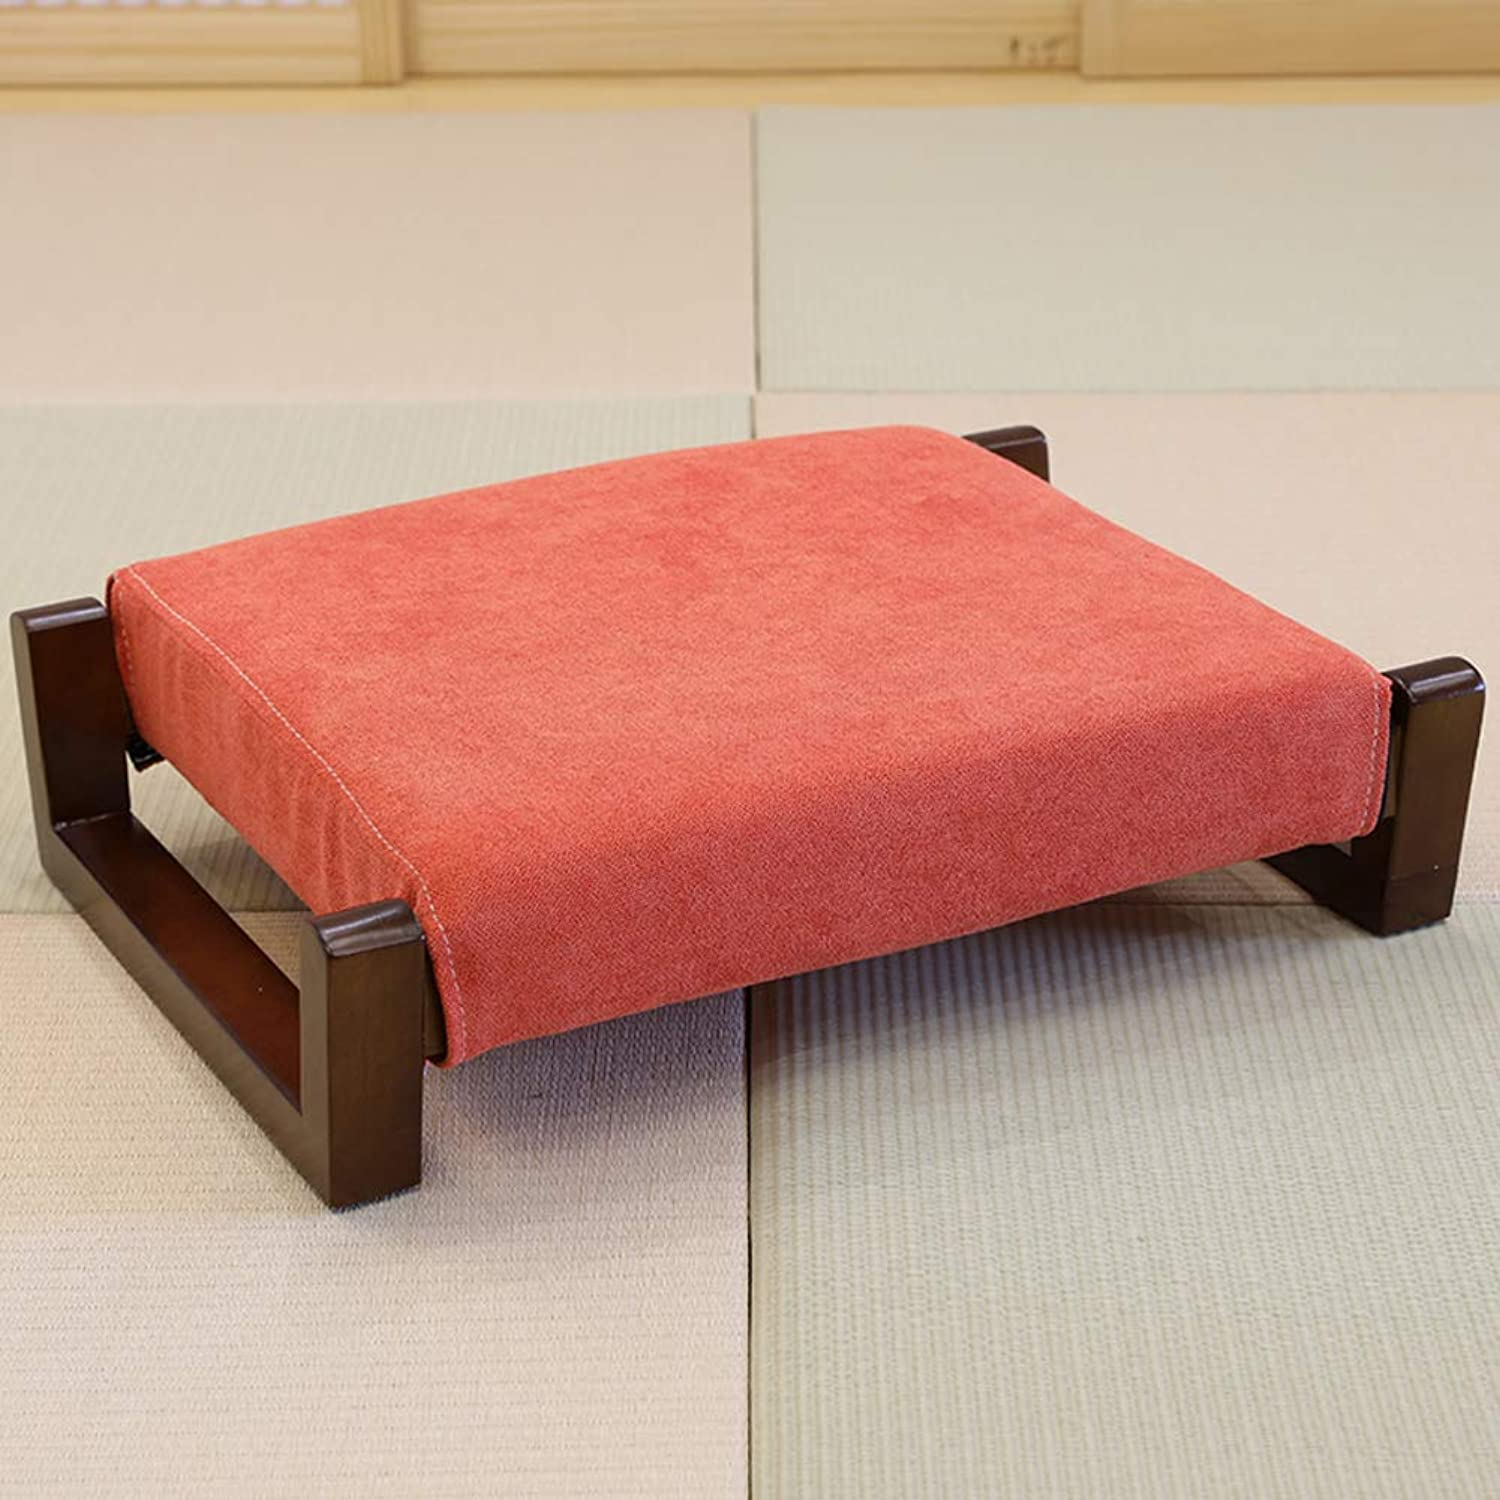 a416c6413d7b Wood Tatami Chair,Zaisu Foldable Floor Seating Meditation-E Floor nofeyv379- Furniture